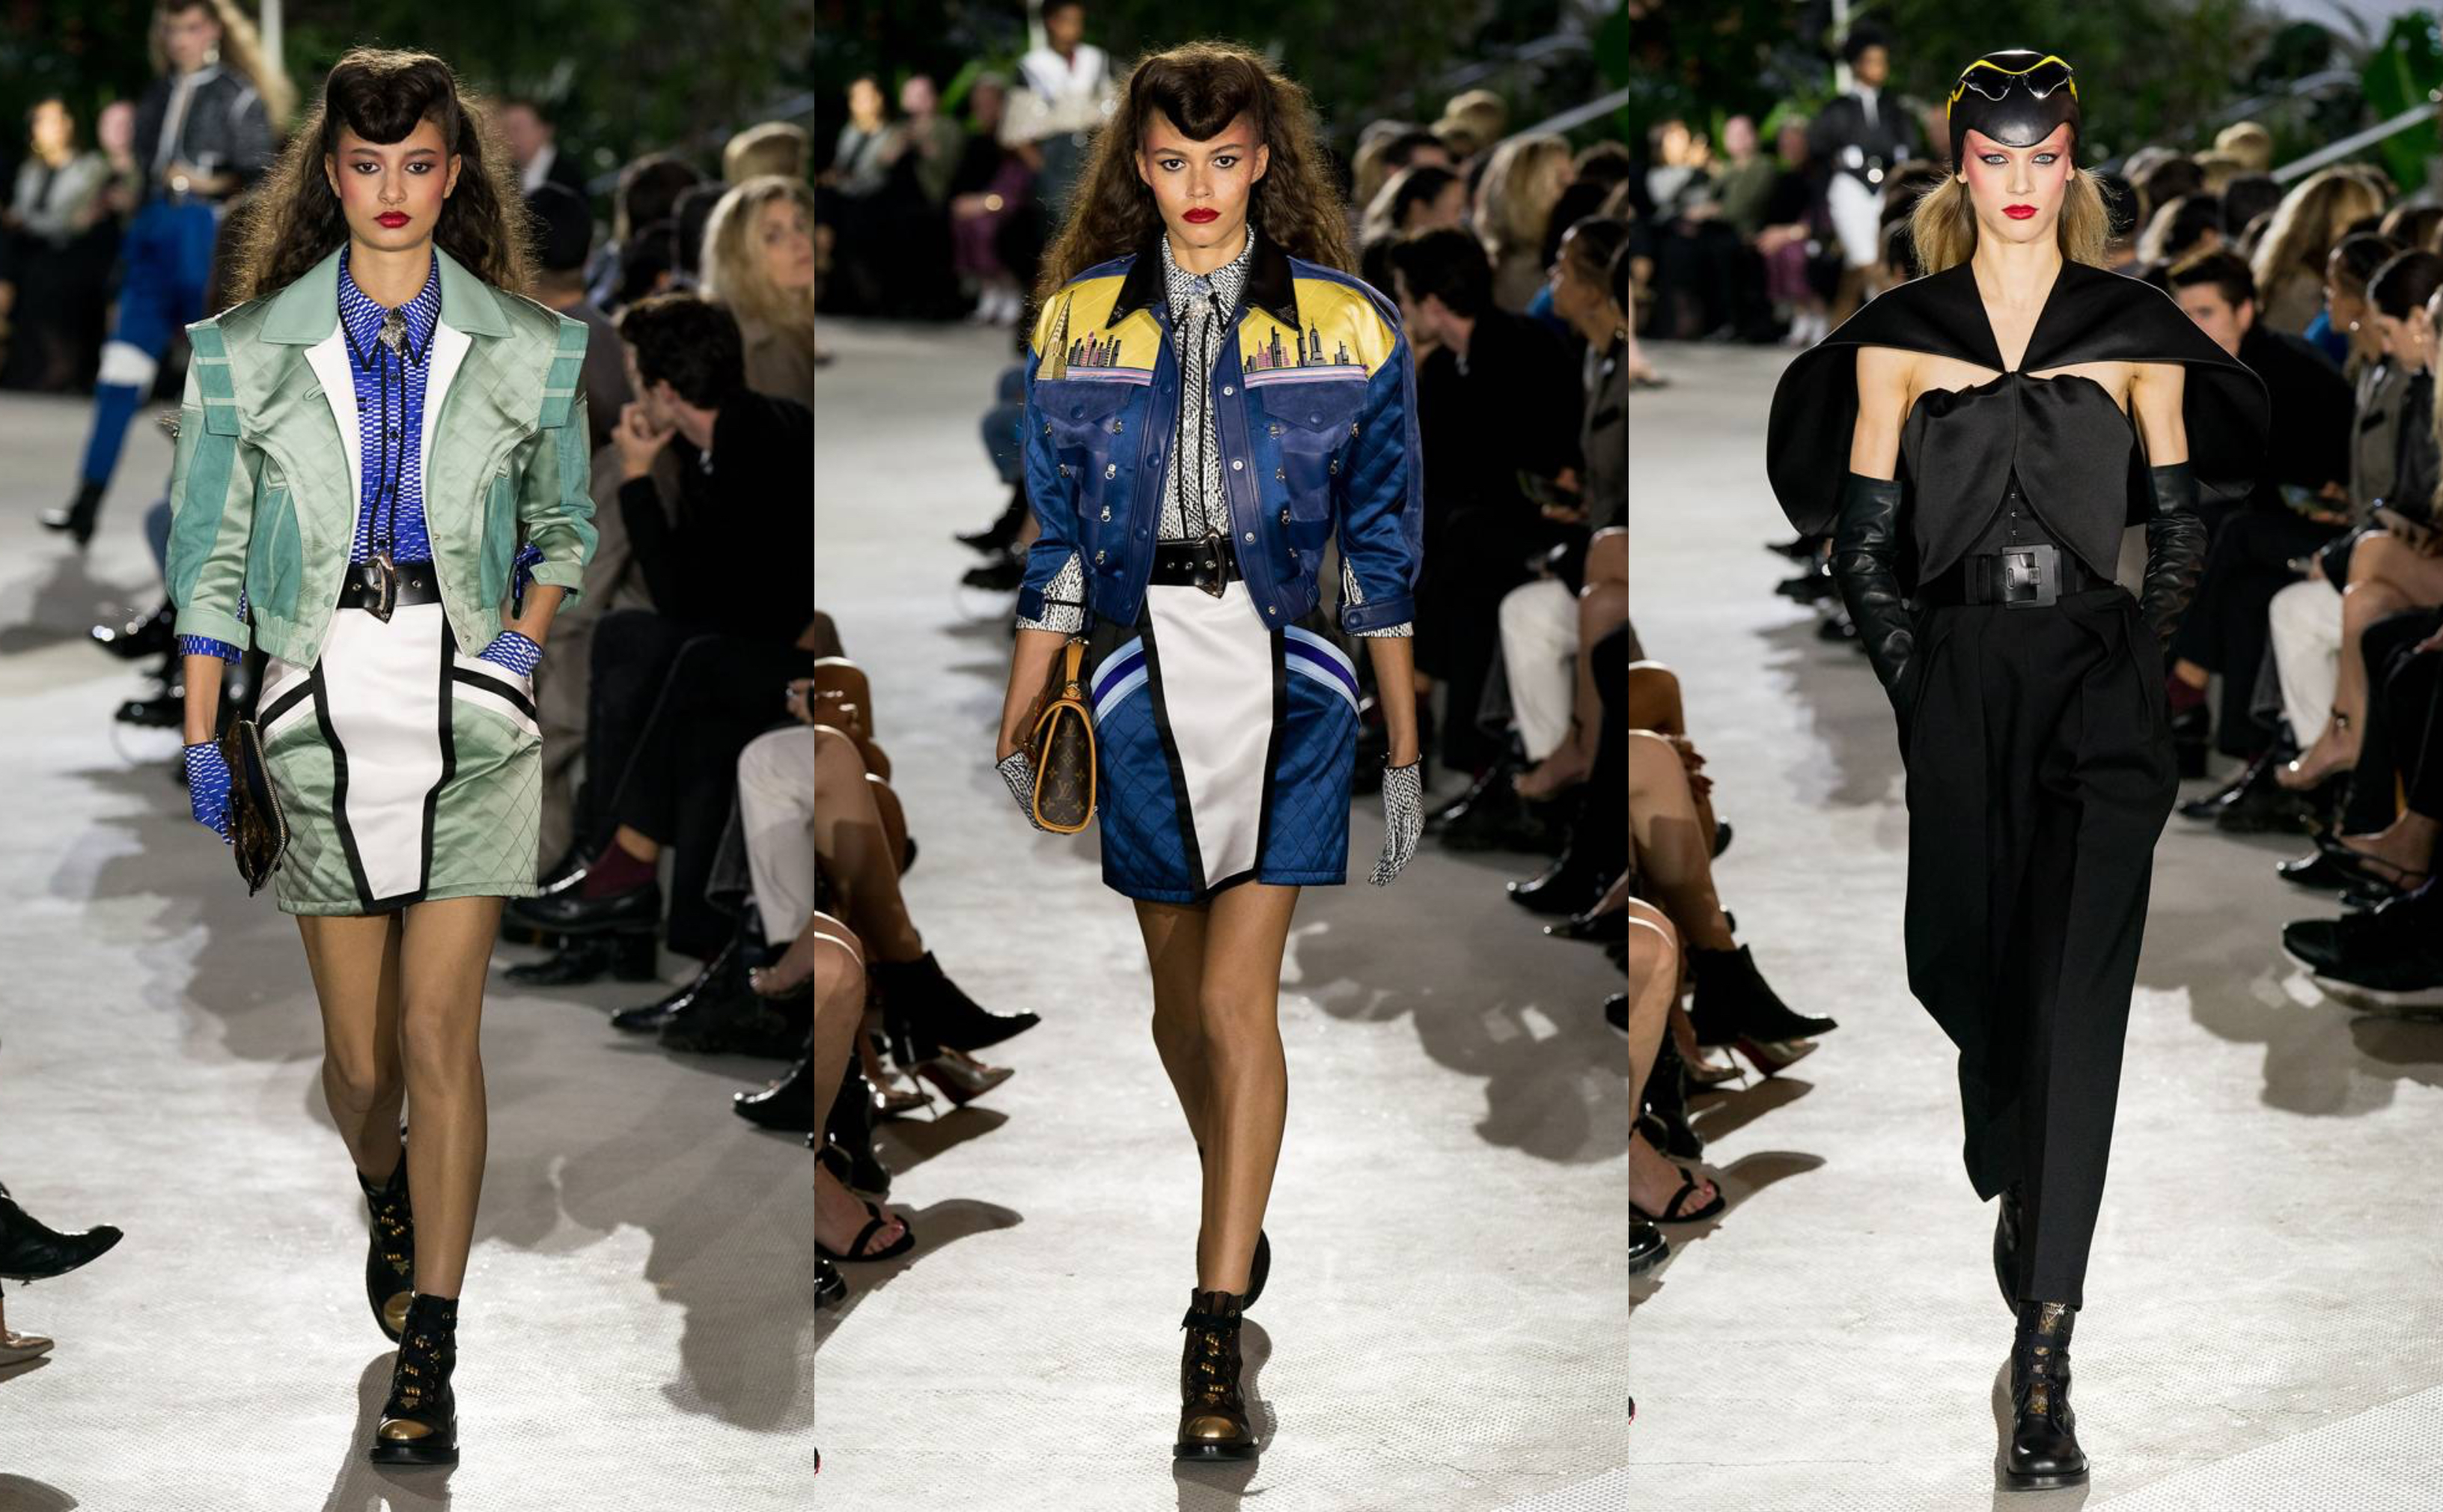 d2f477b848 The Best Looks From Louis Vuitton Cruise 2020 Inspired By New York ...